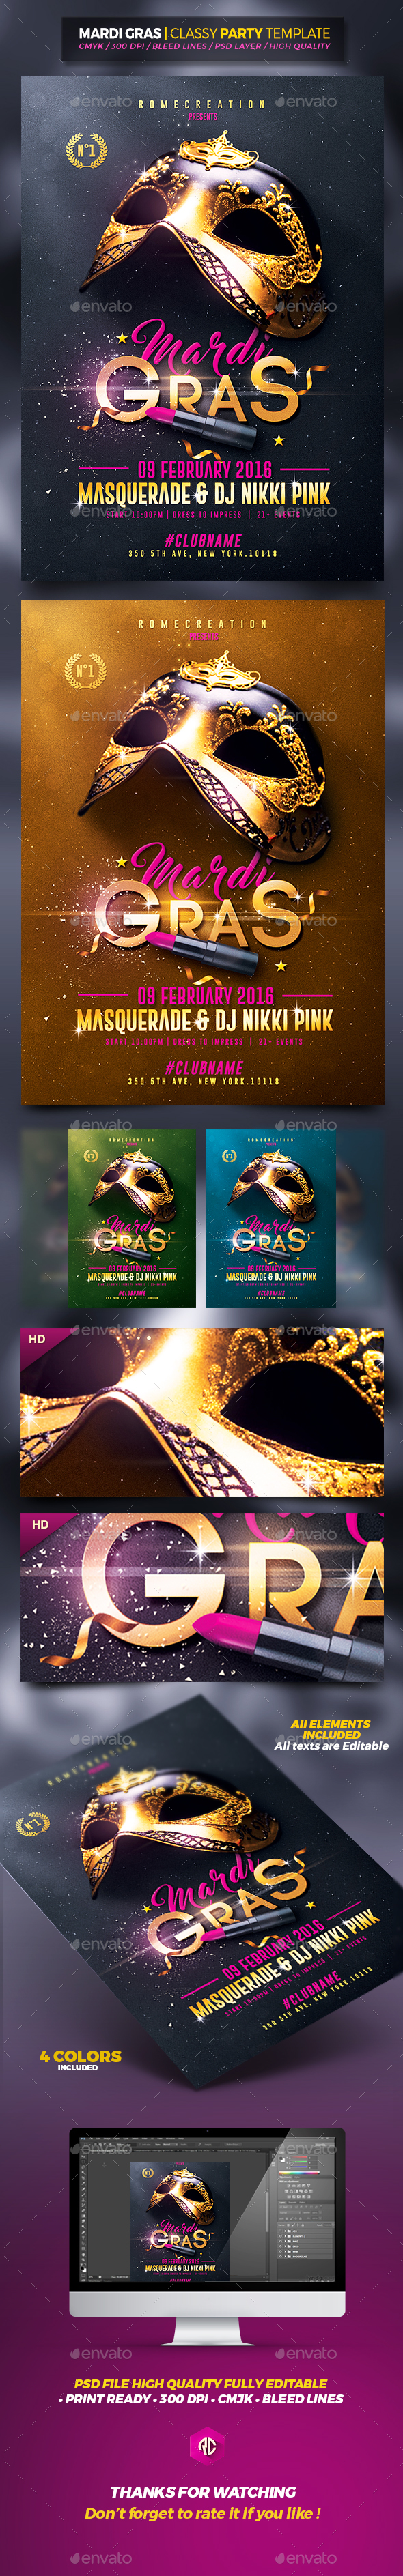 Mardi Gras | Classy Flyer Template - Events Flyers